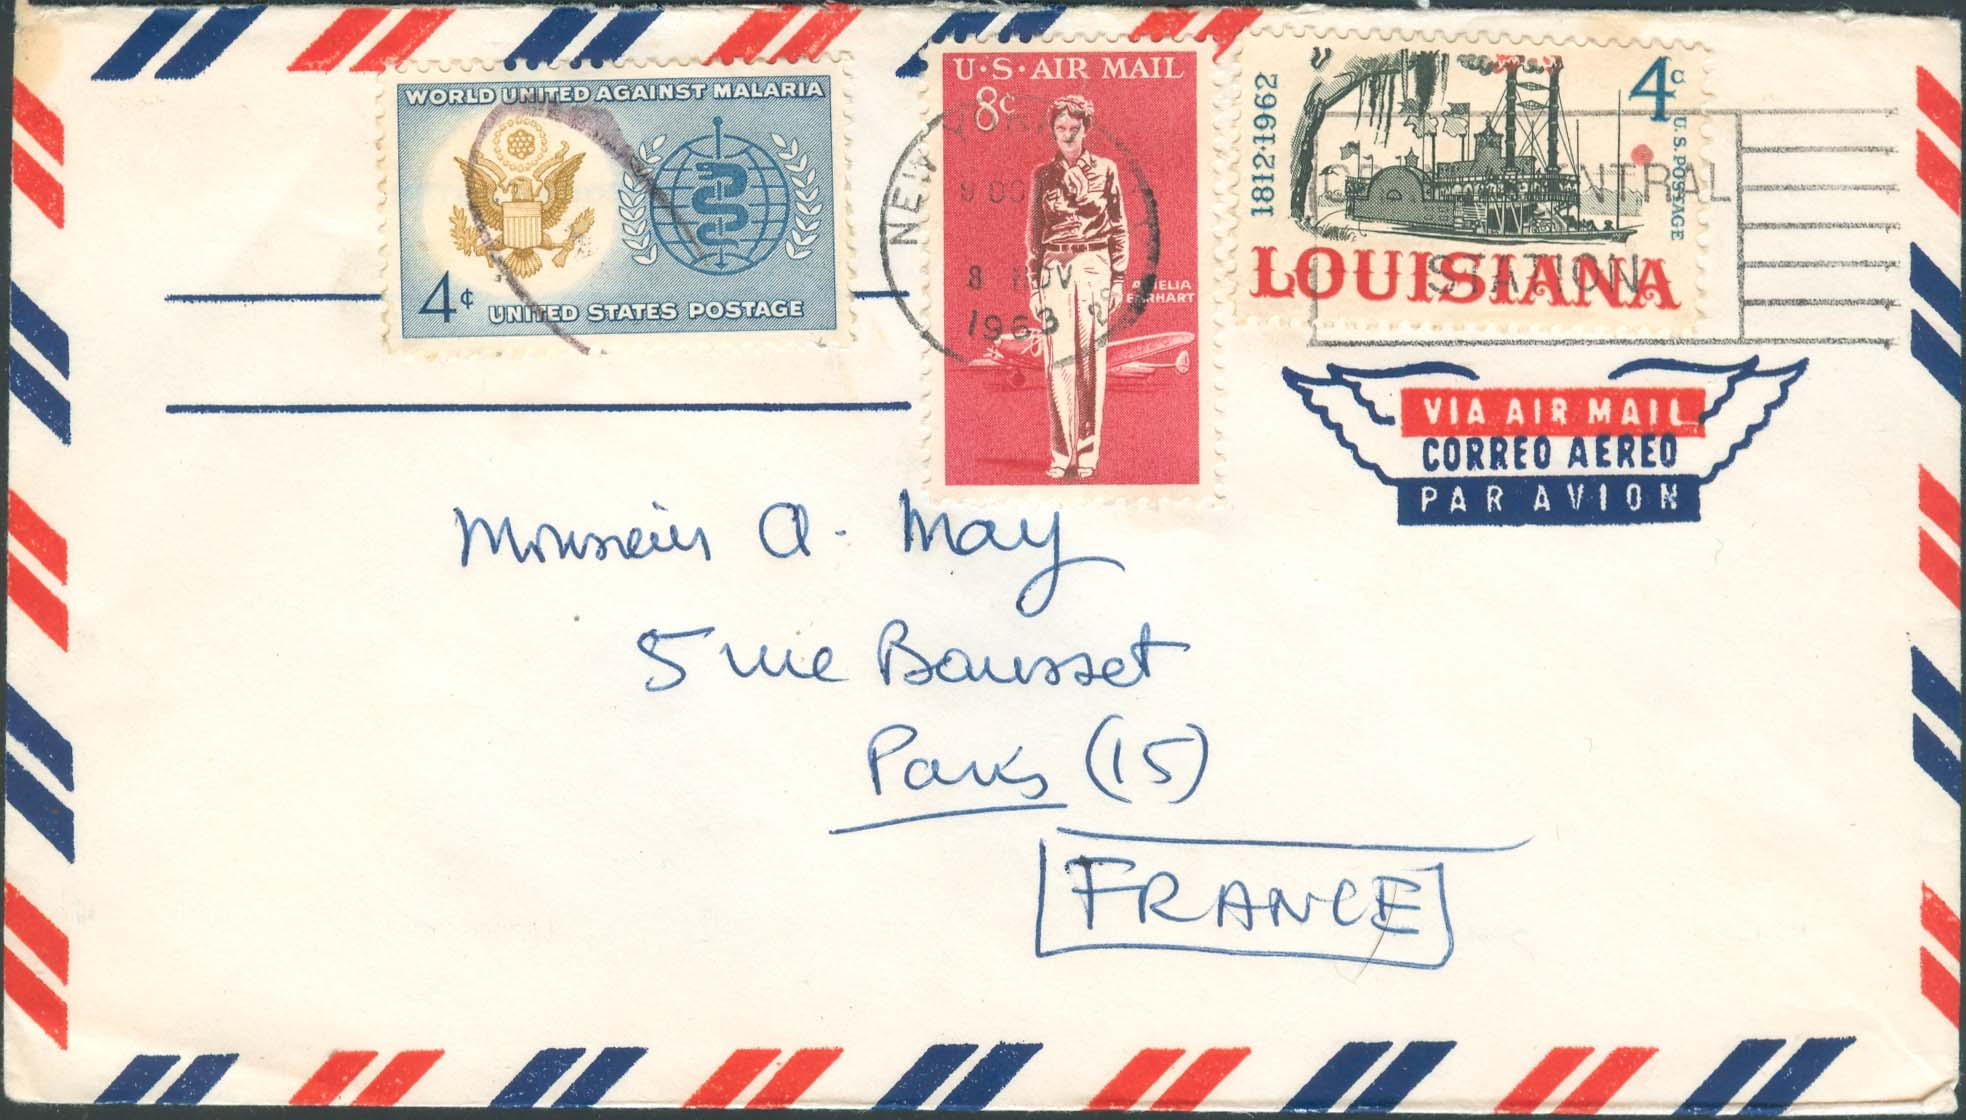 1963, November 8th, 9:00 PM. New York, NY to France (Overpaid by 1¢)